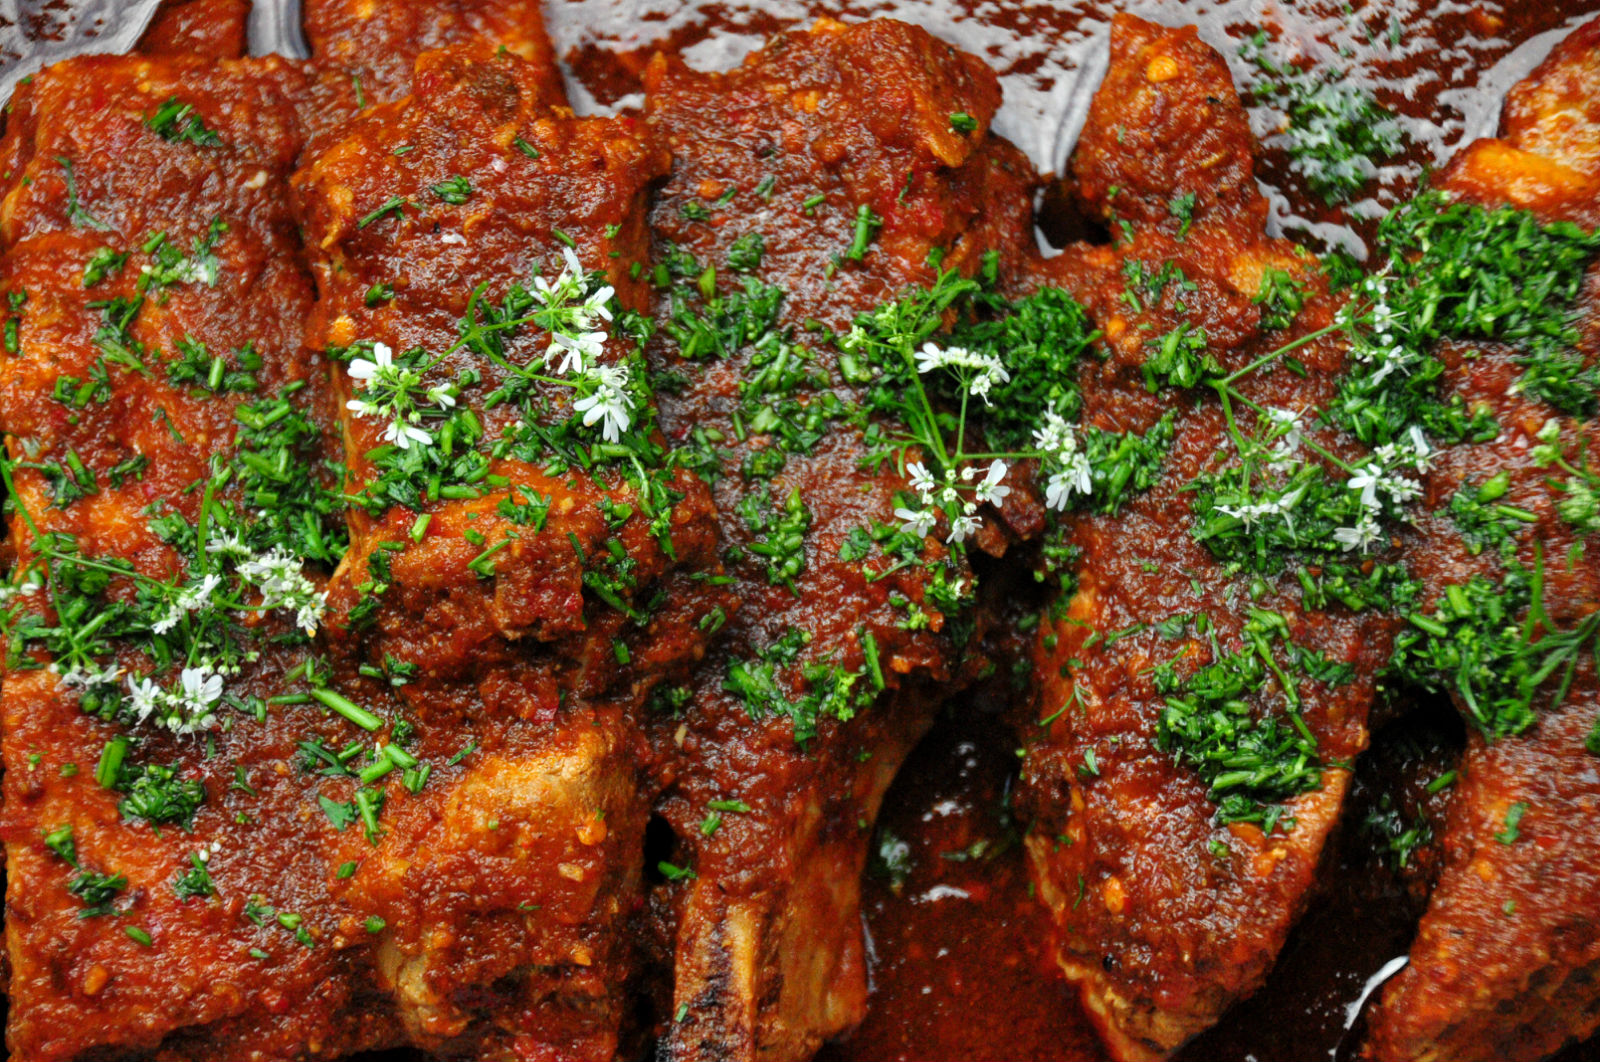 Country boneless pork rib recipes